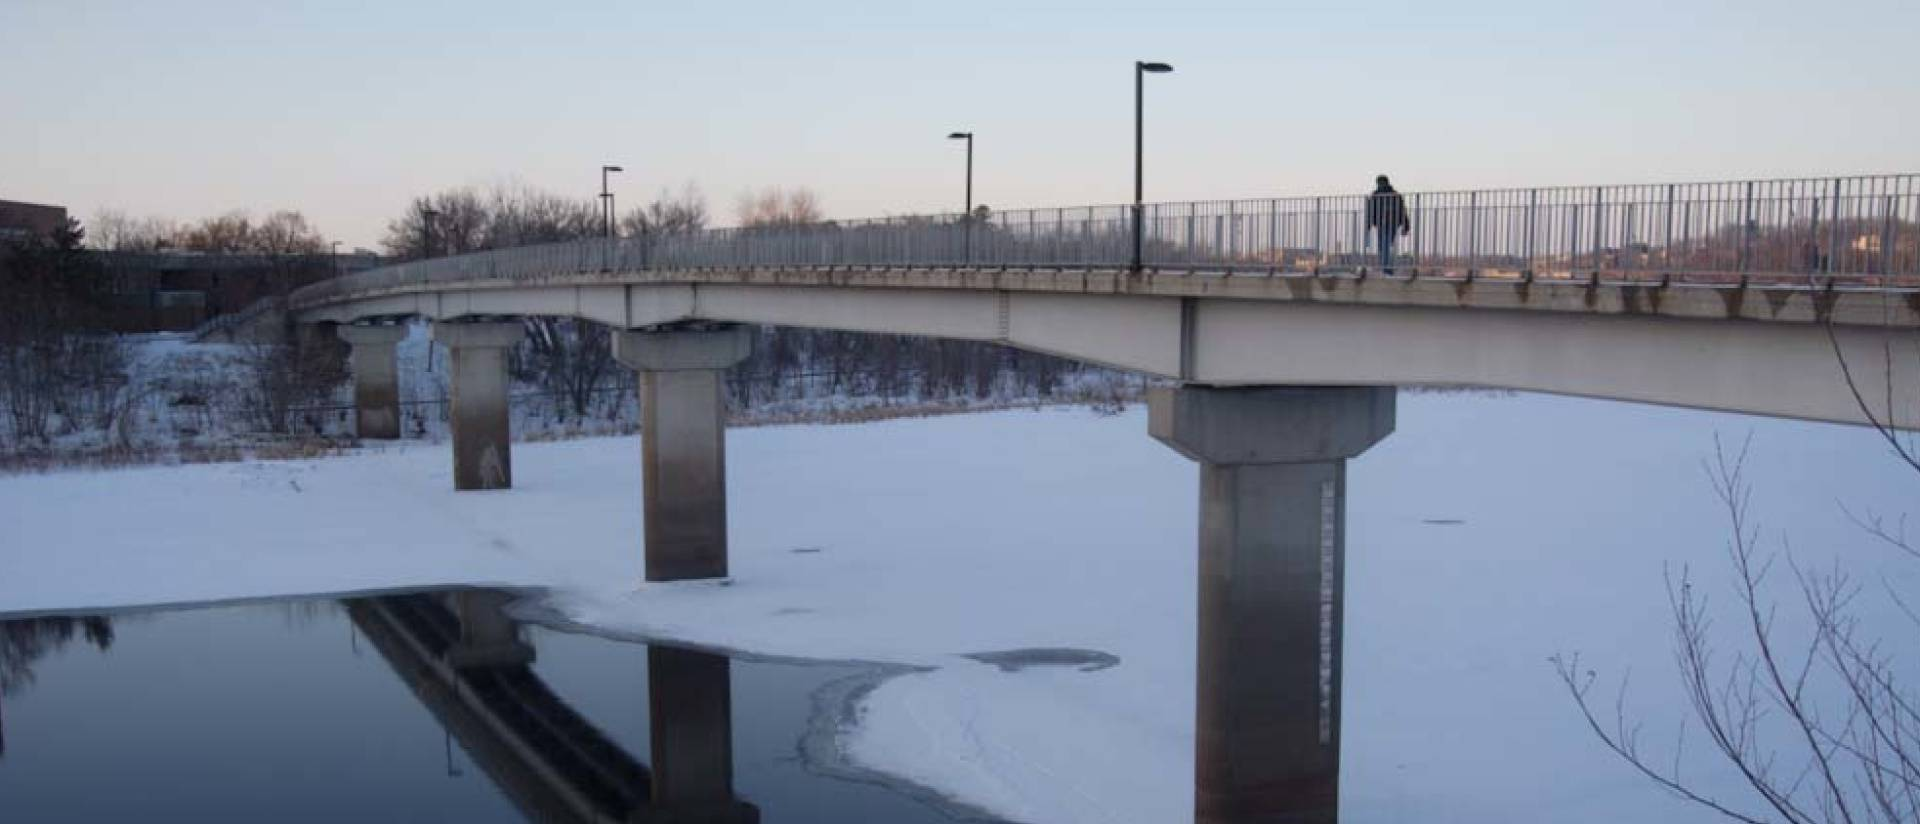 UW-Eau Claire footbridge on winter day